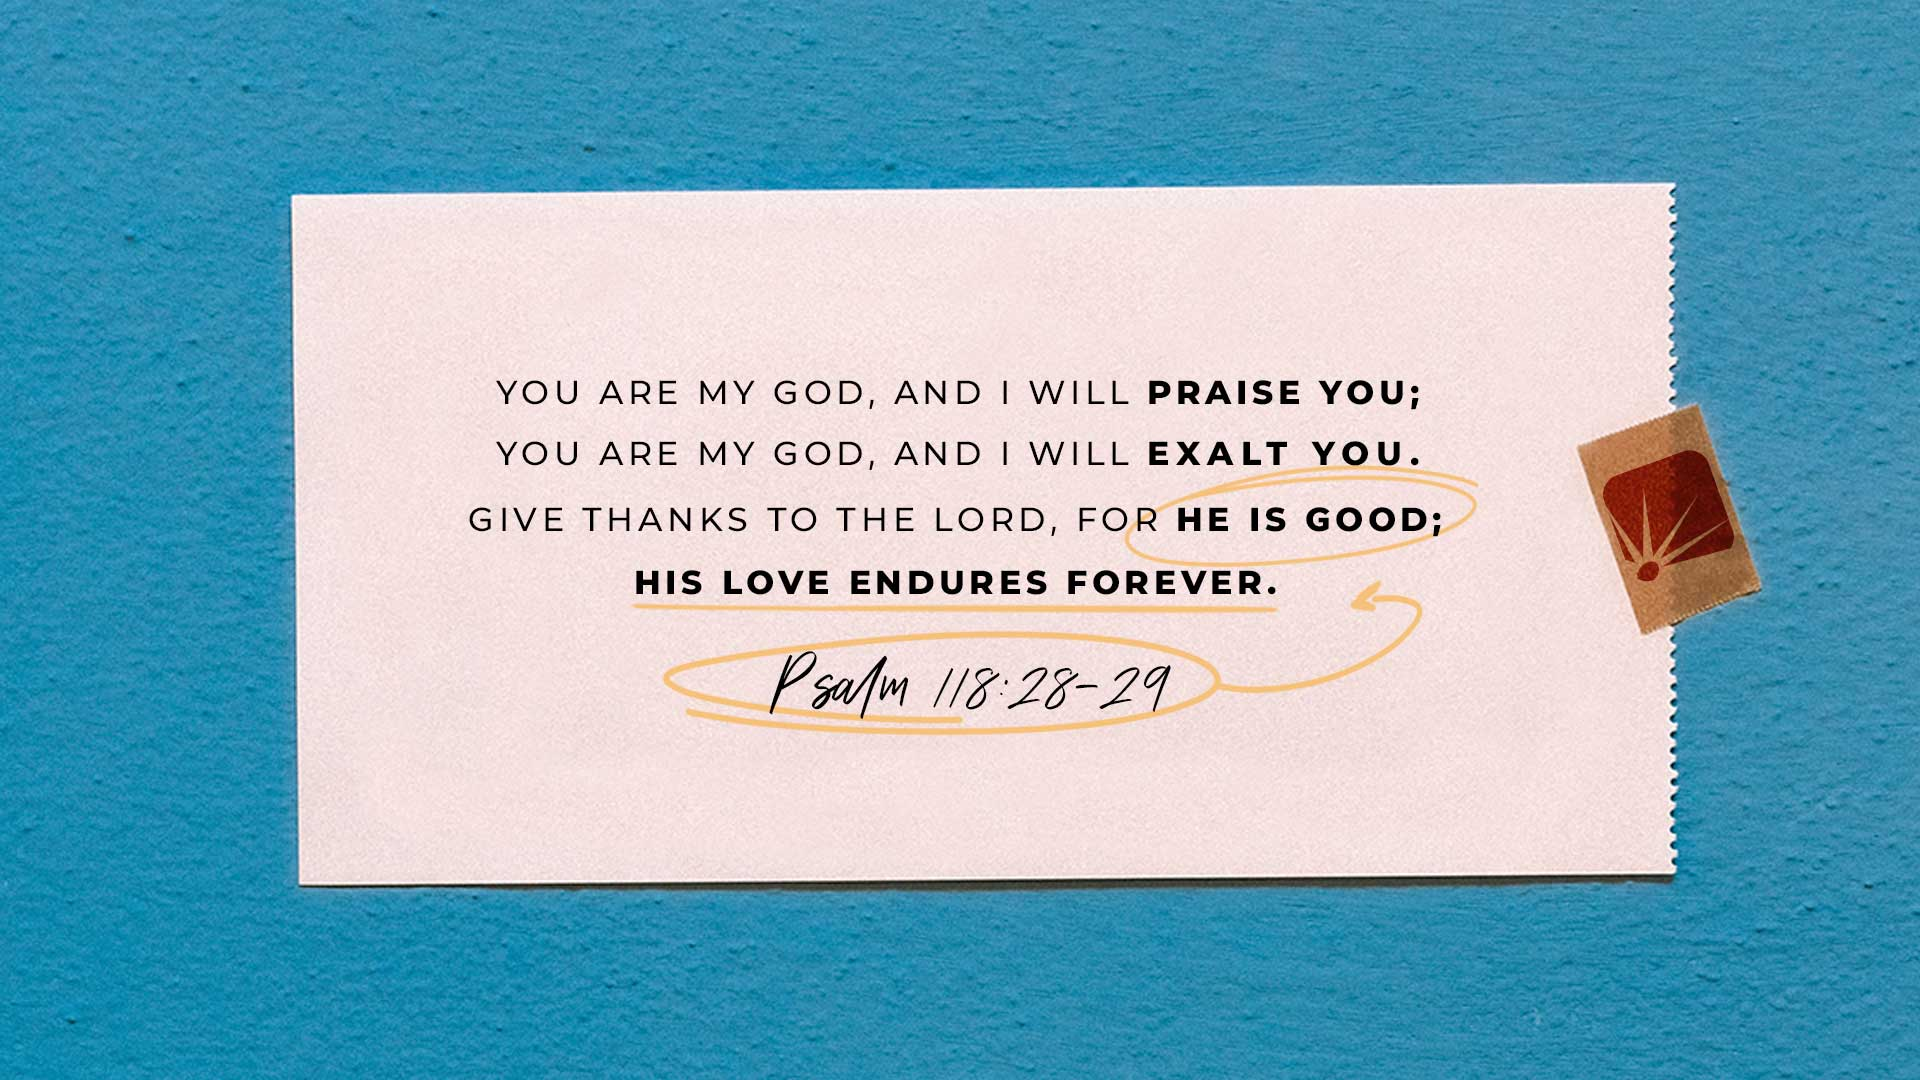 Psalm 118:28-29: Give Thanks to the LORD, for He is Good; His love endures forever